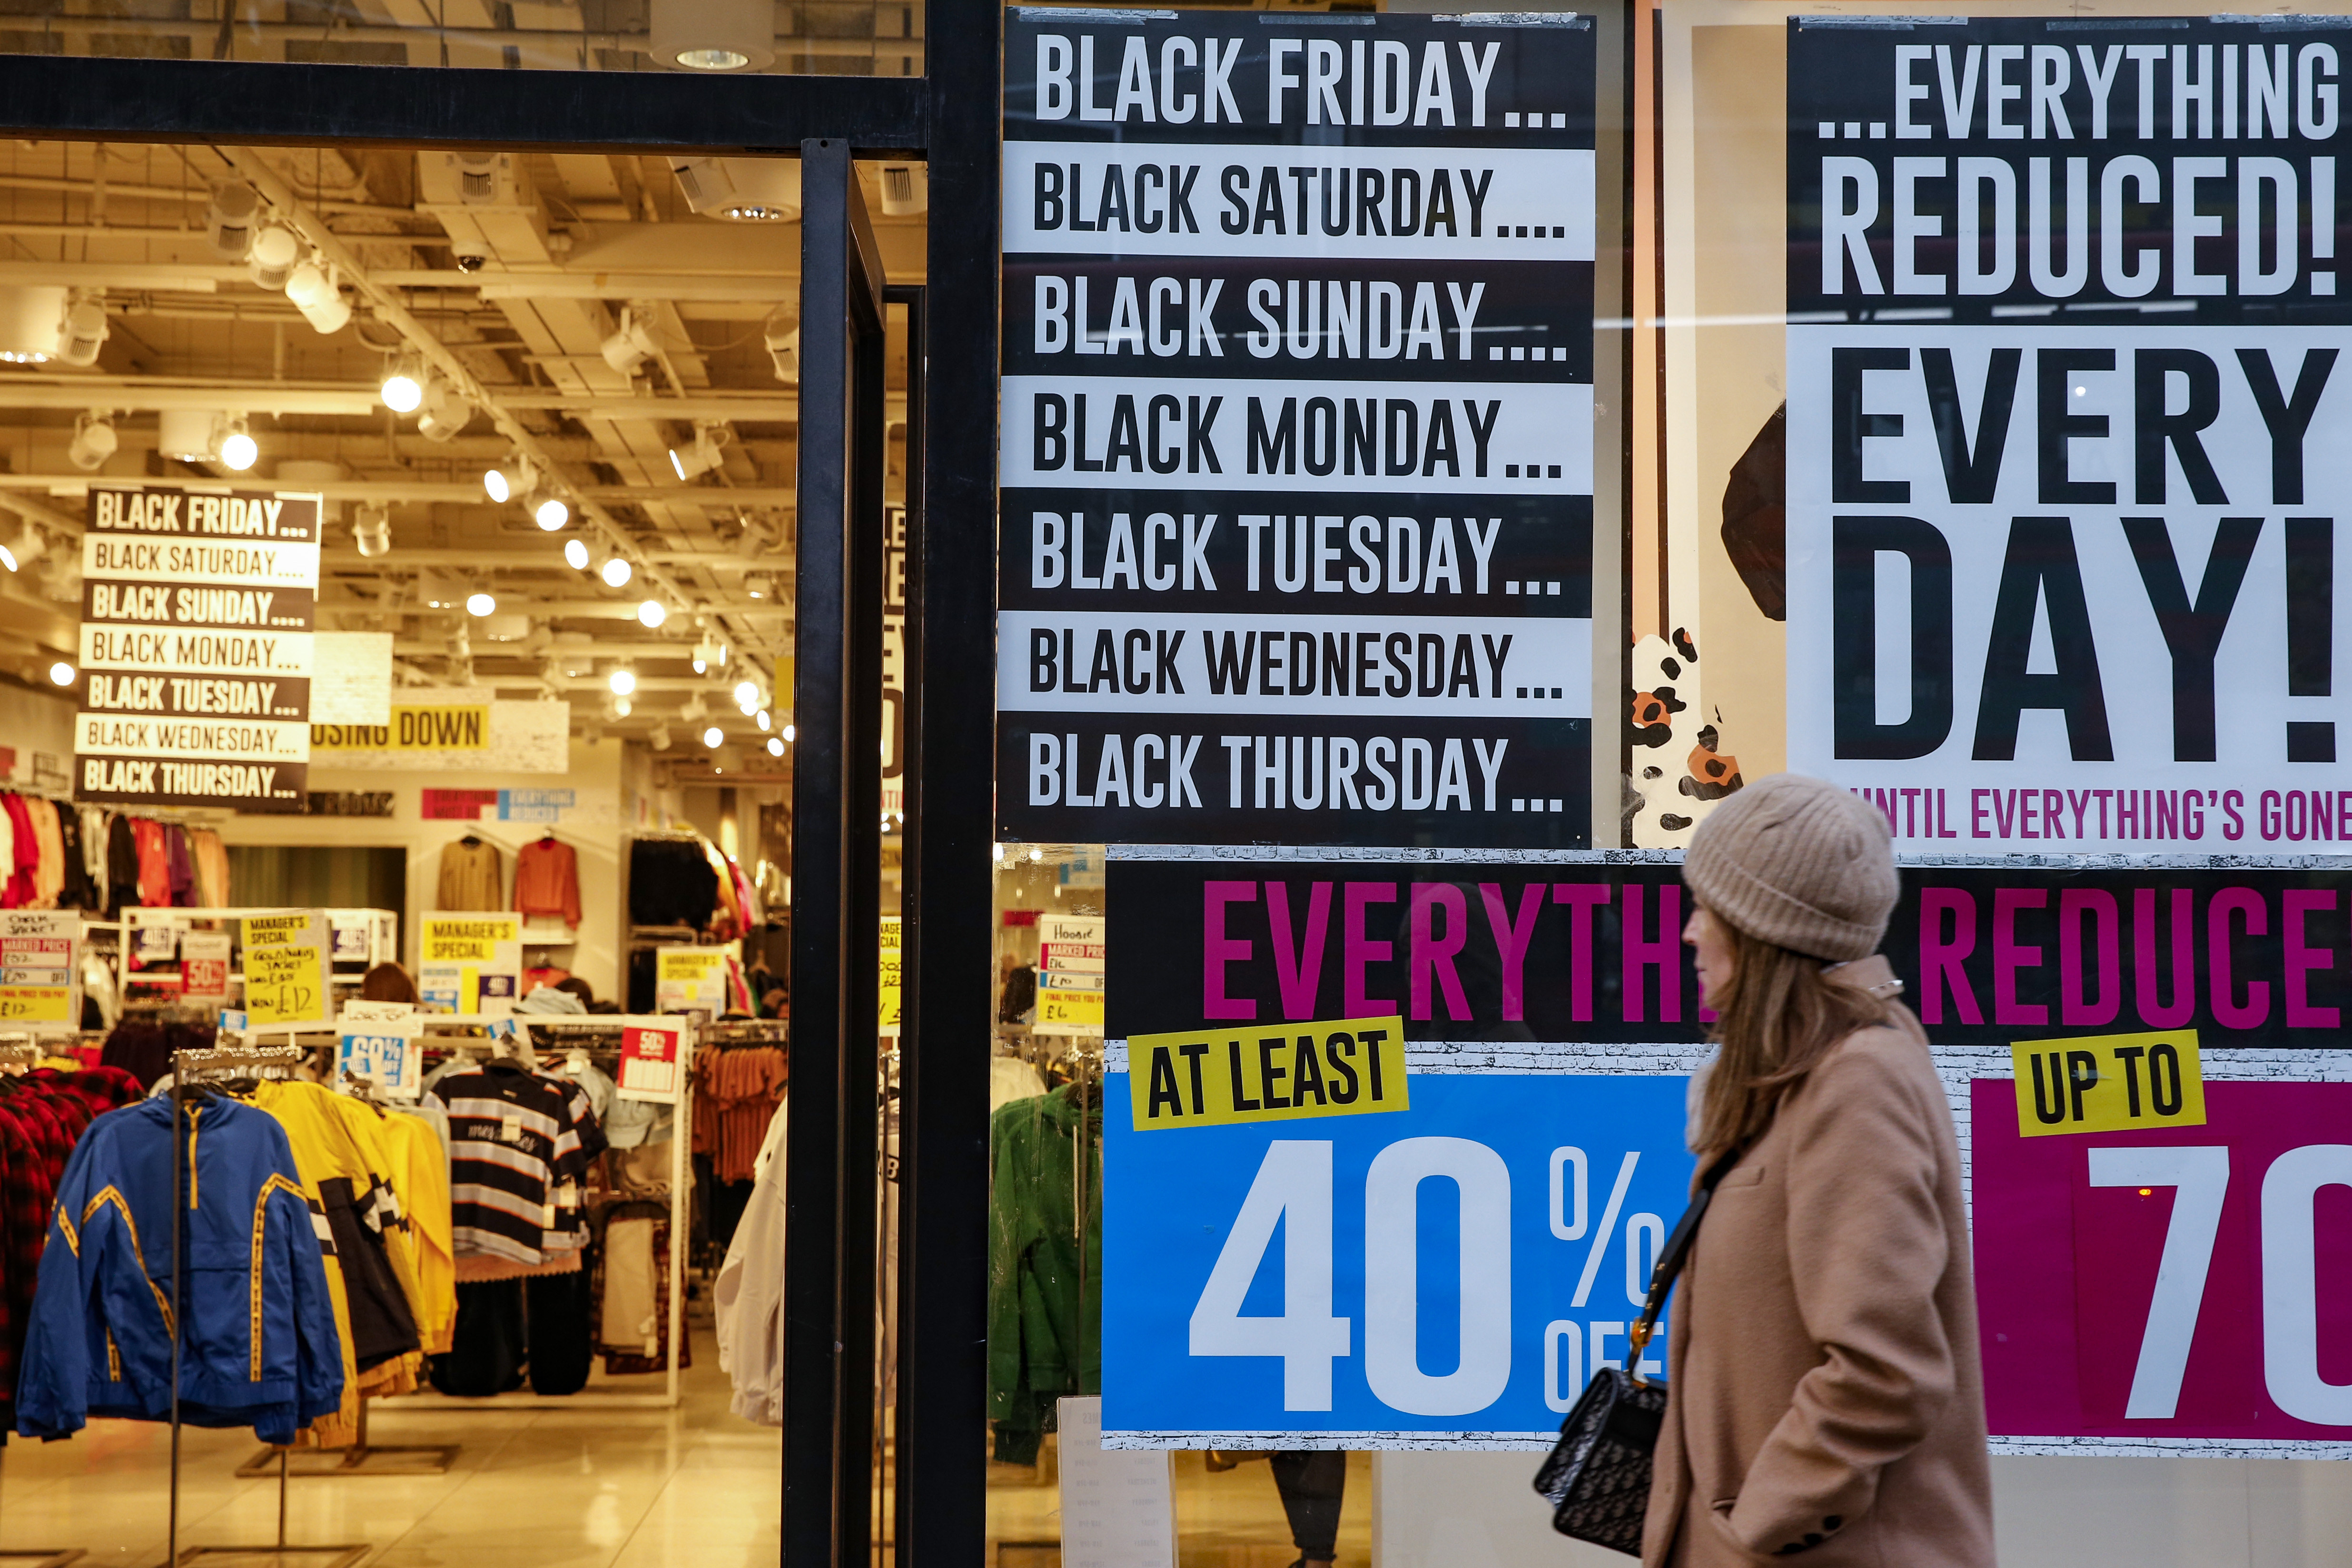 London Stores Advertise Their Black Friday Events